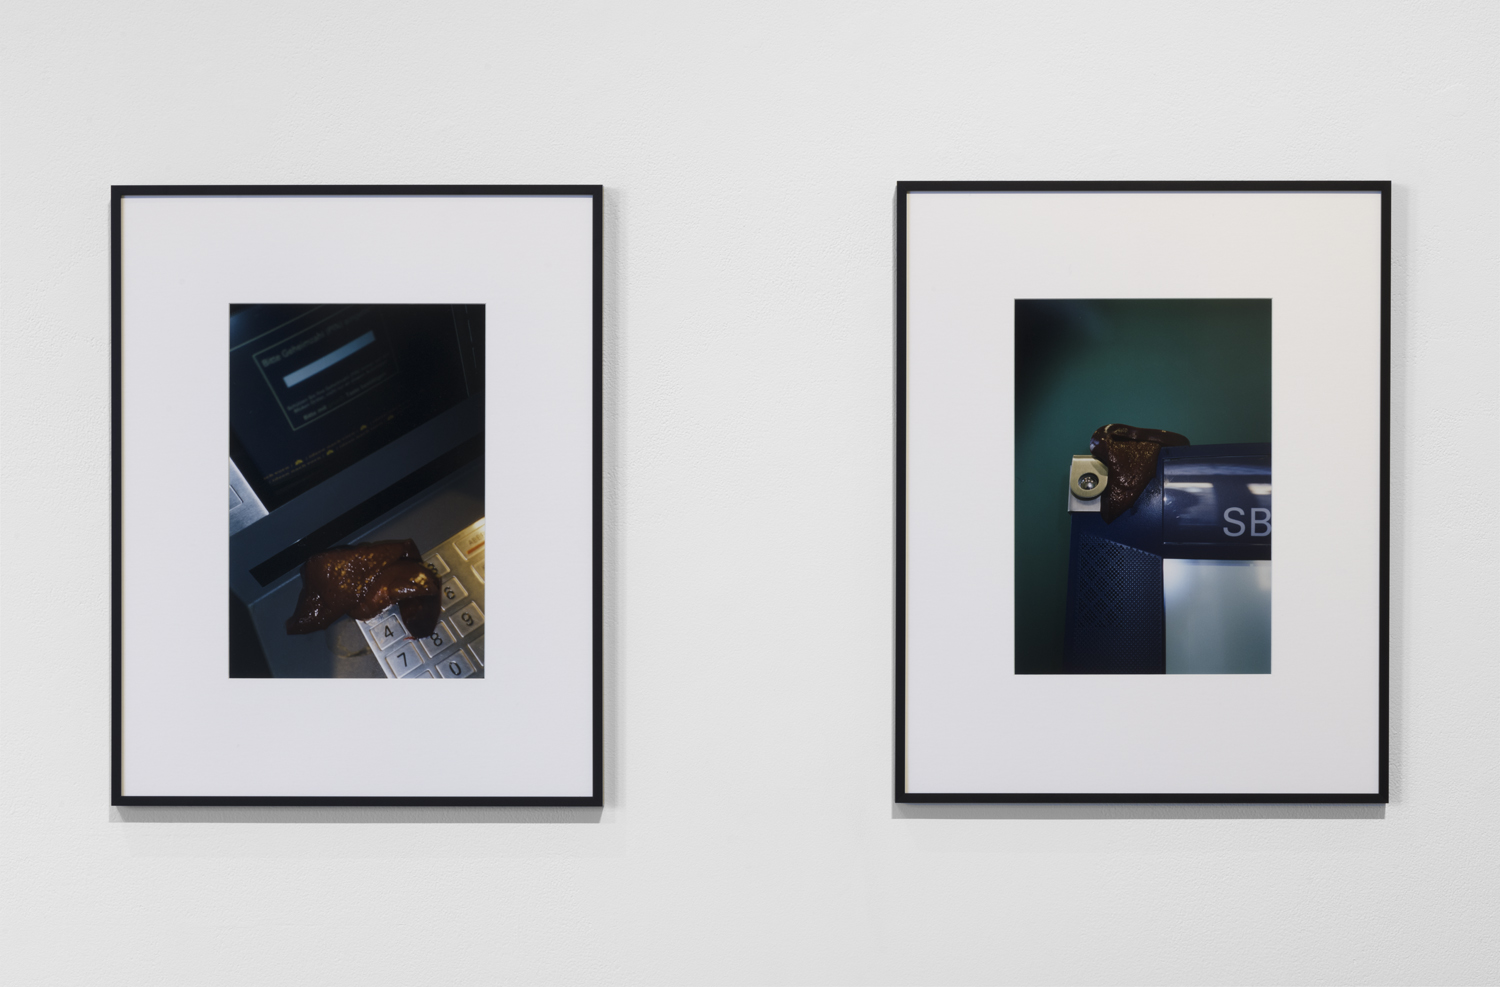 This artwork installation includes two photographs by the artist Josephine Pryde. The photograph on the left depicts a raw liver on top of an ATM machine keyboard. The photograph on the right depicts another raw liver on top of a dark blue machine set in front of a dark green-blue background. The machine has a partial lettering that reads